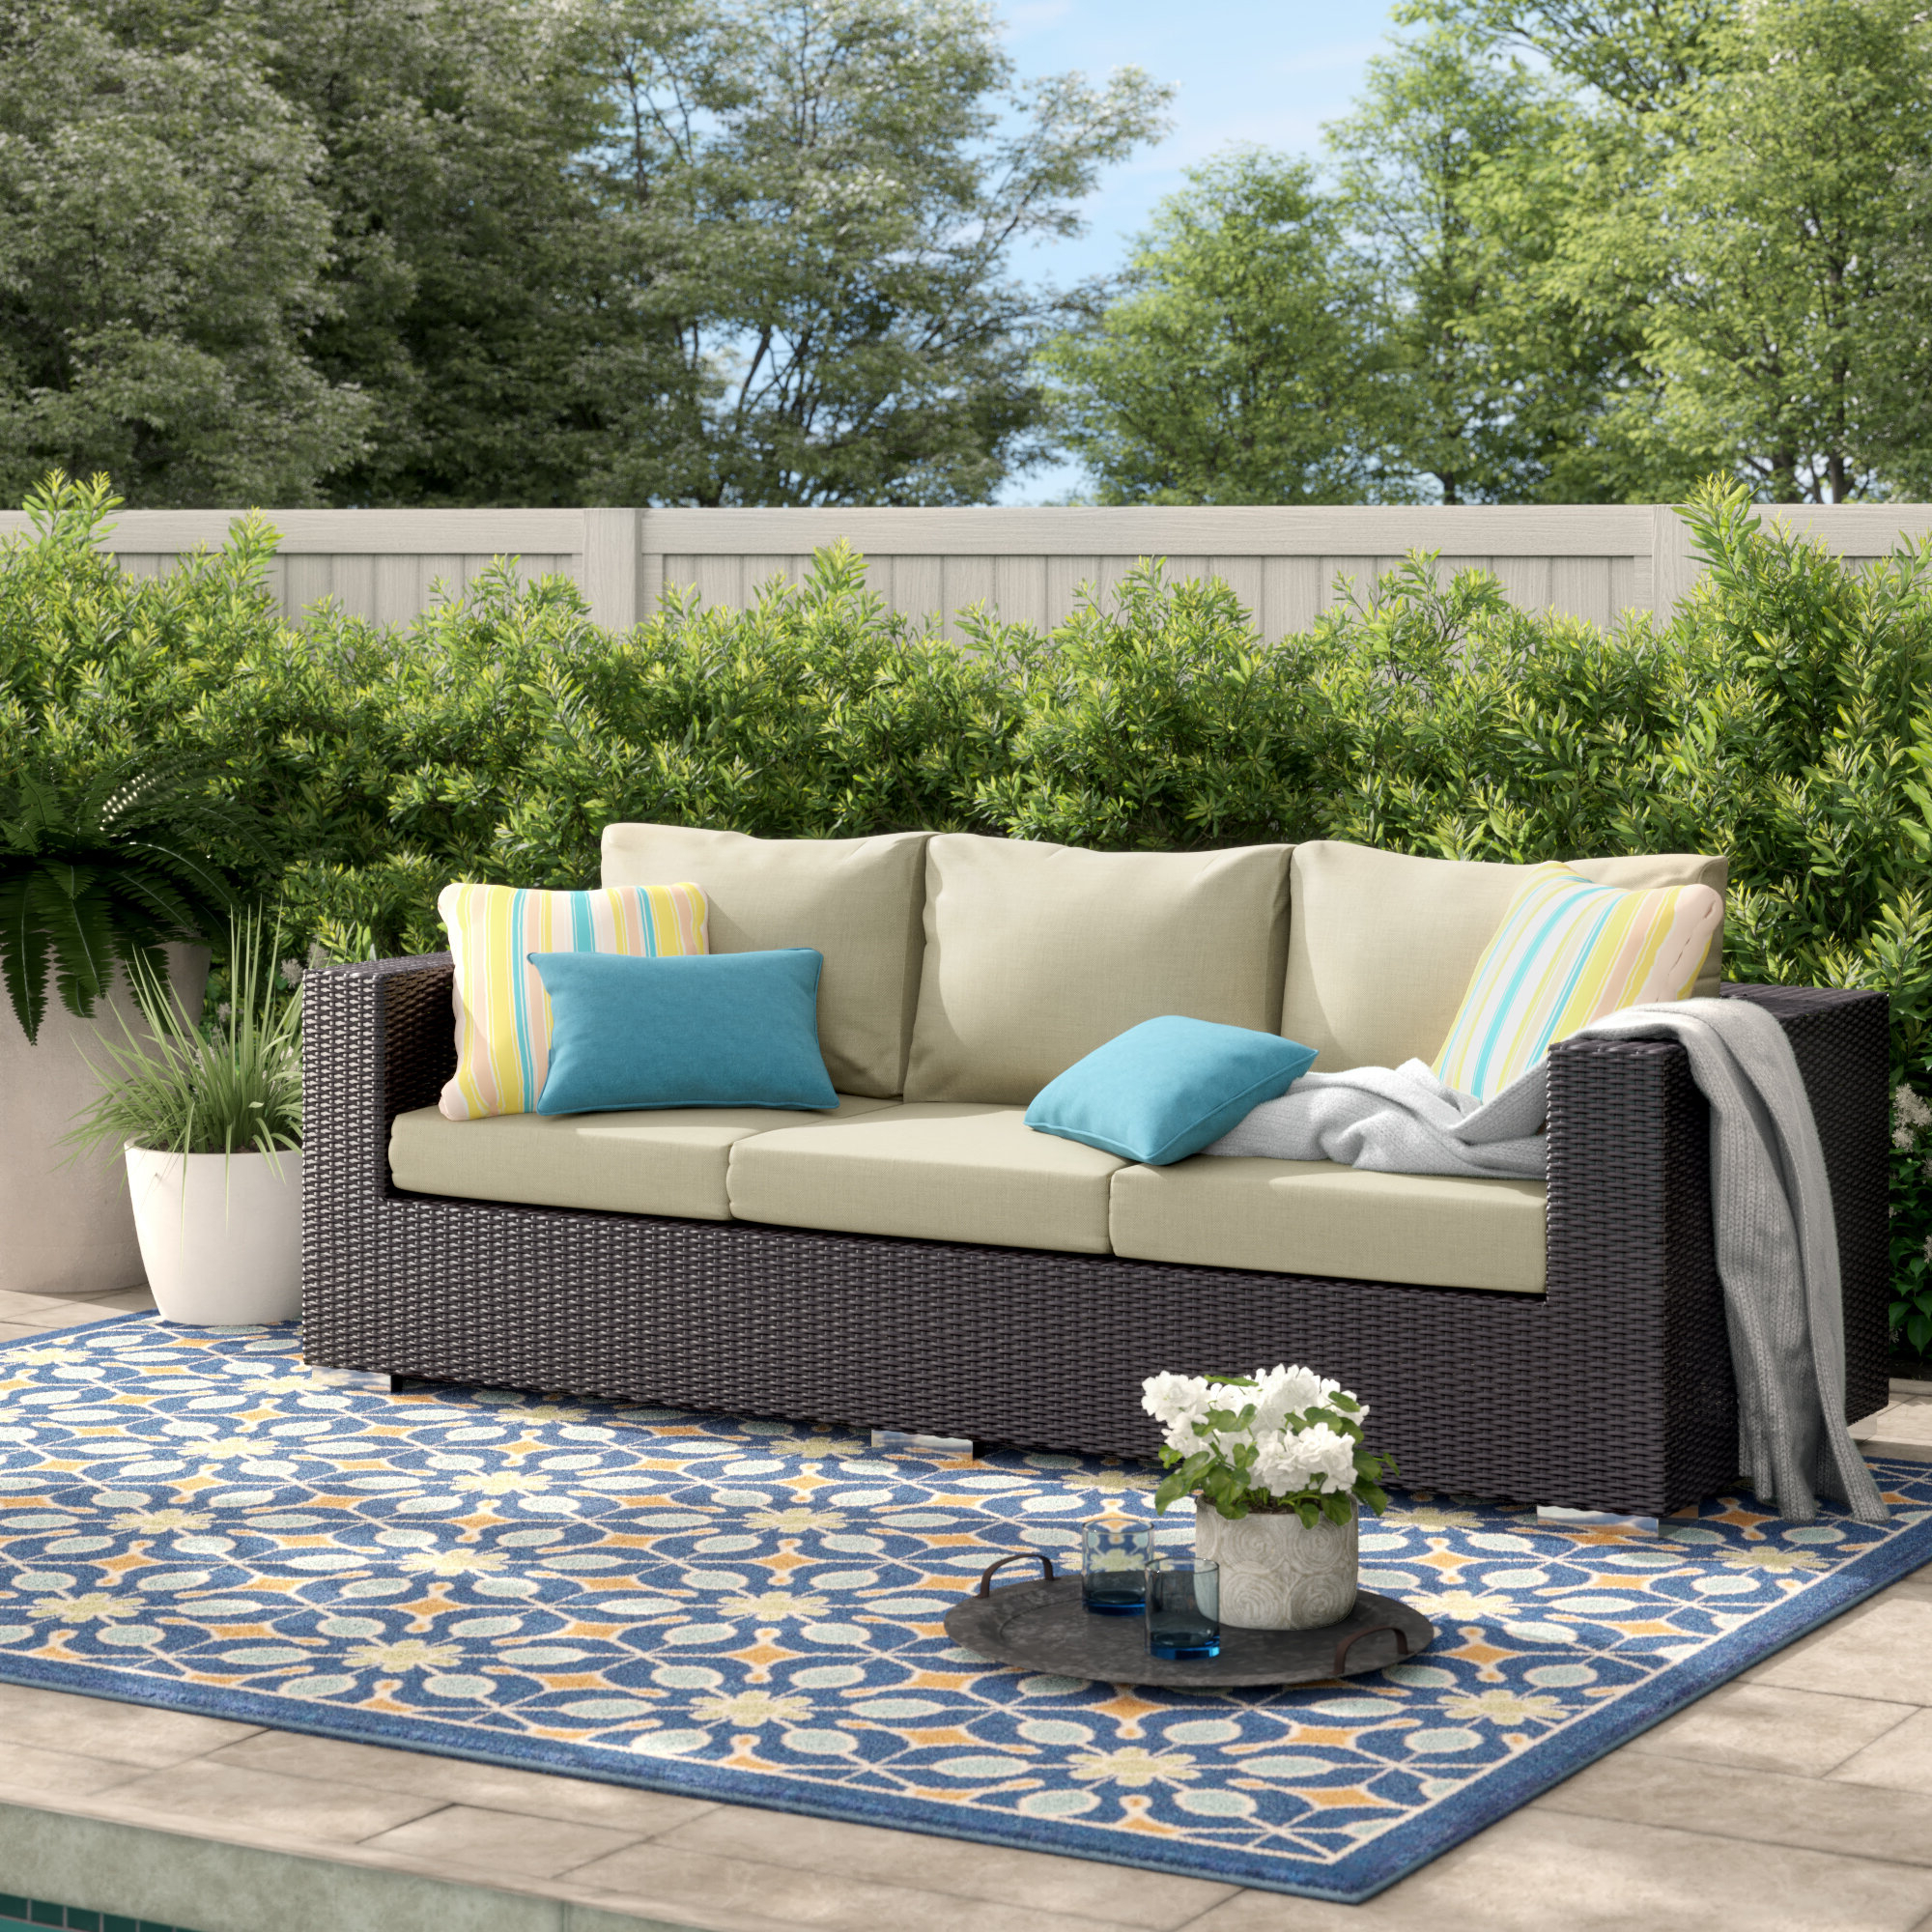 Keiran Patio Sofas With Cushions Throughout Favorite Brentwood Patio Sofa With Cushions (View 2 of 20)